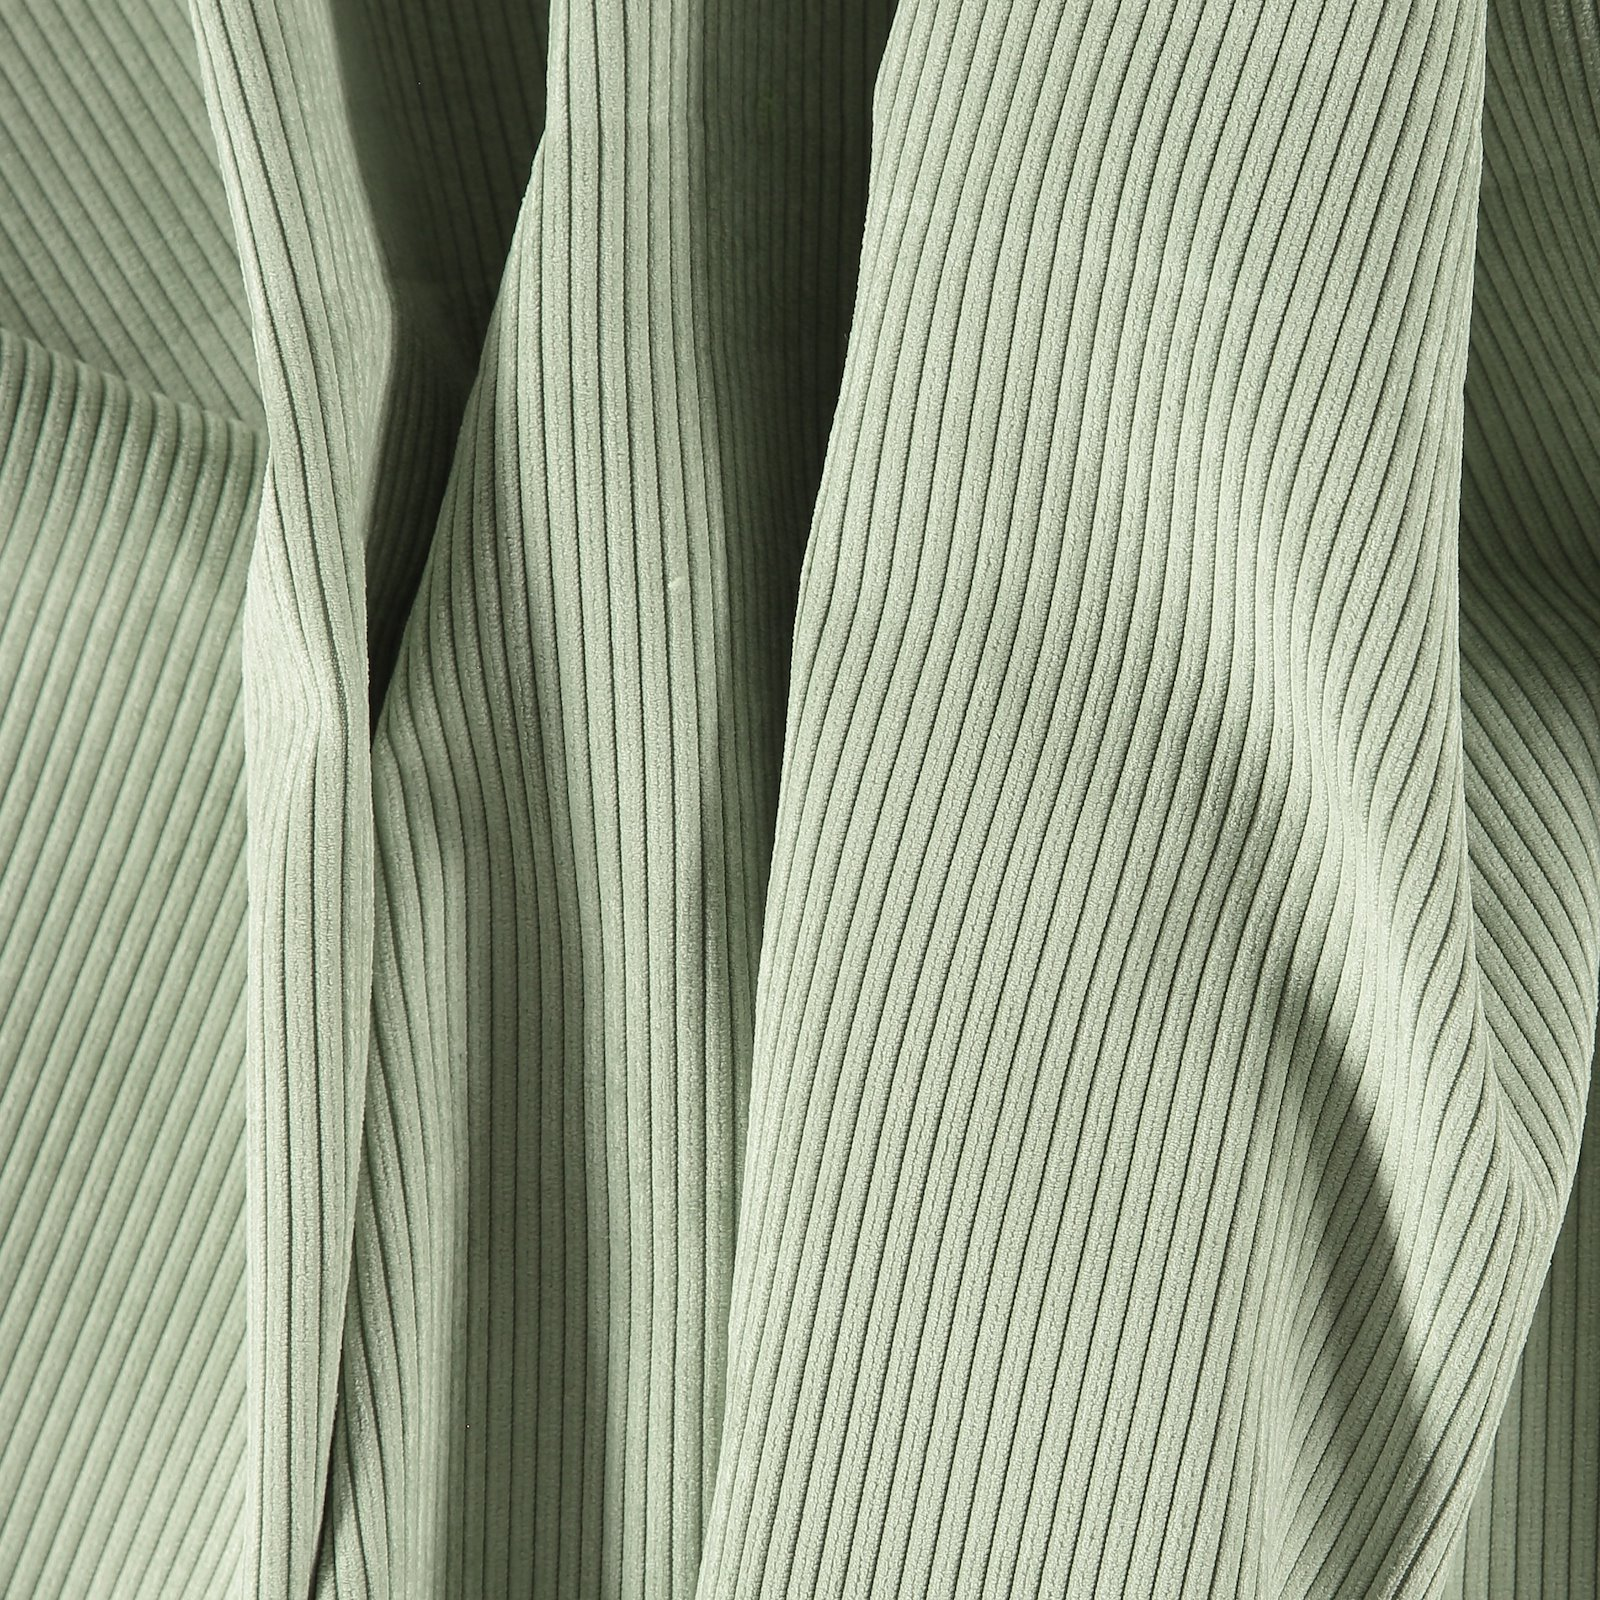 Upholstery corduroy 6 wales light sage 824035_pack